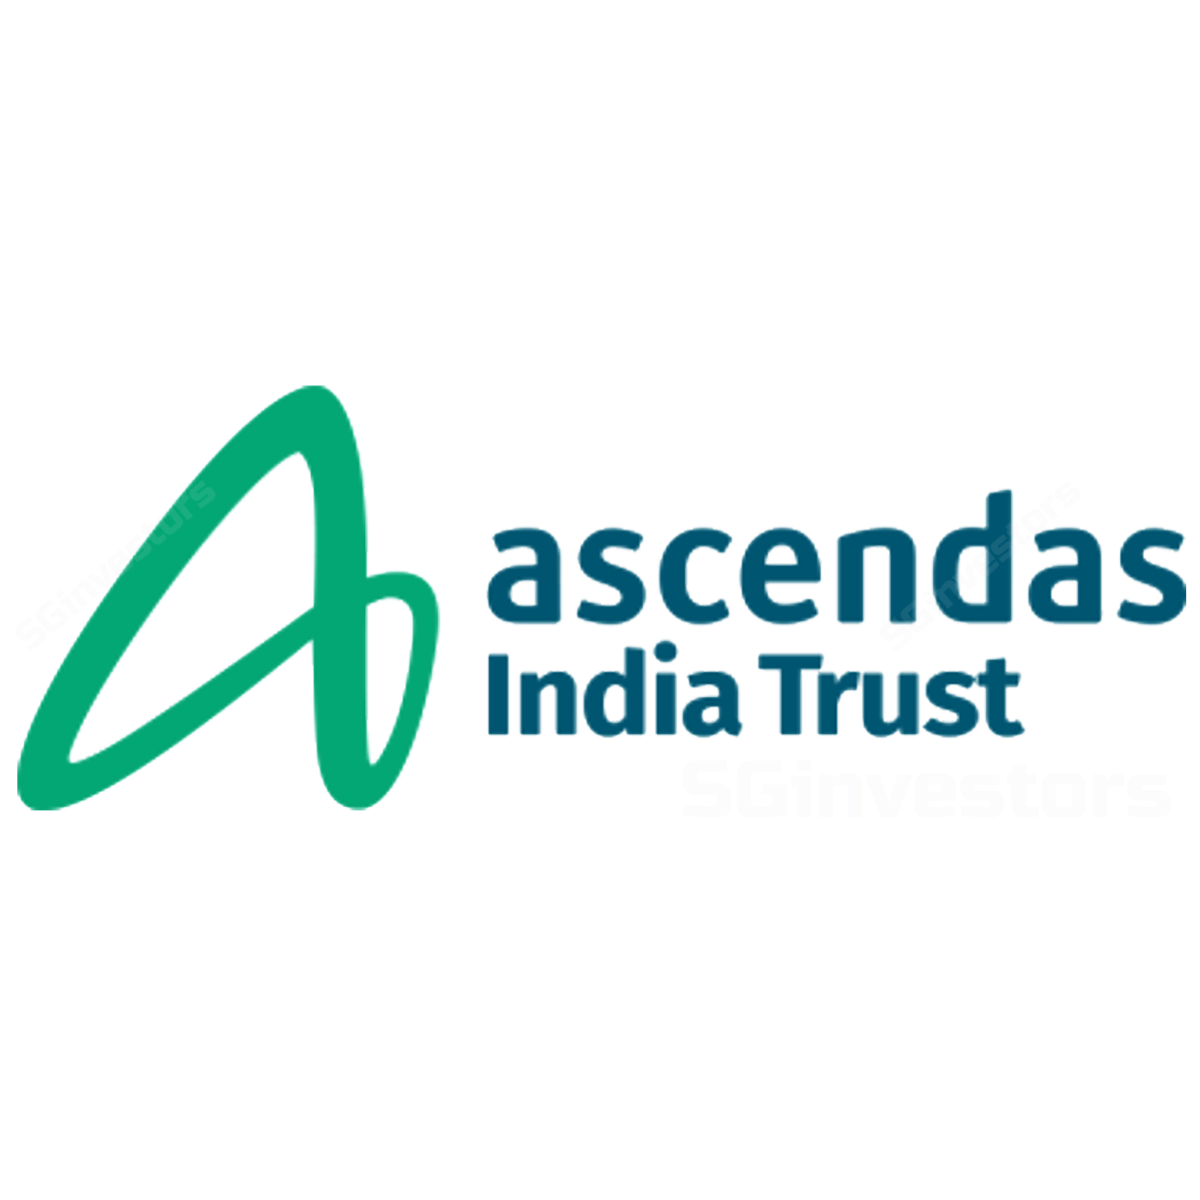 Ascendas India Trust - DBS Vickers 2017-04-27: Next Leg of Growth